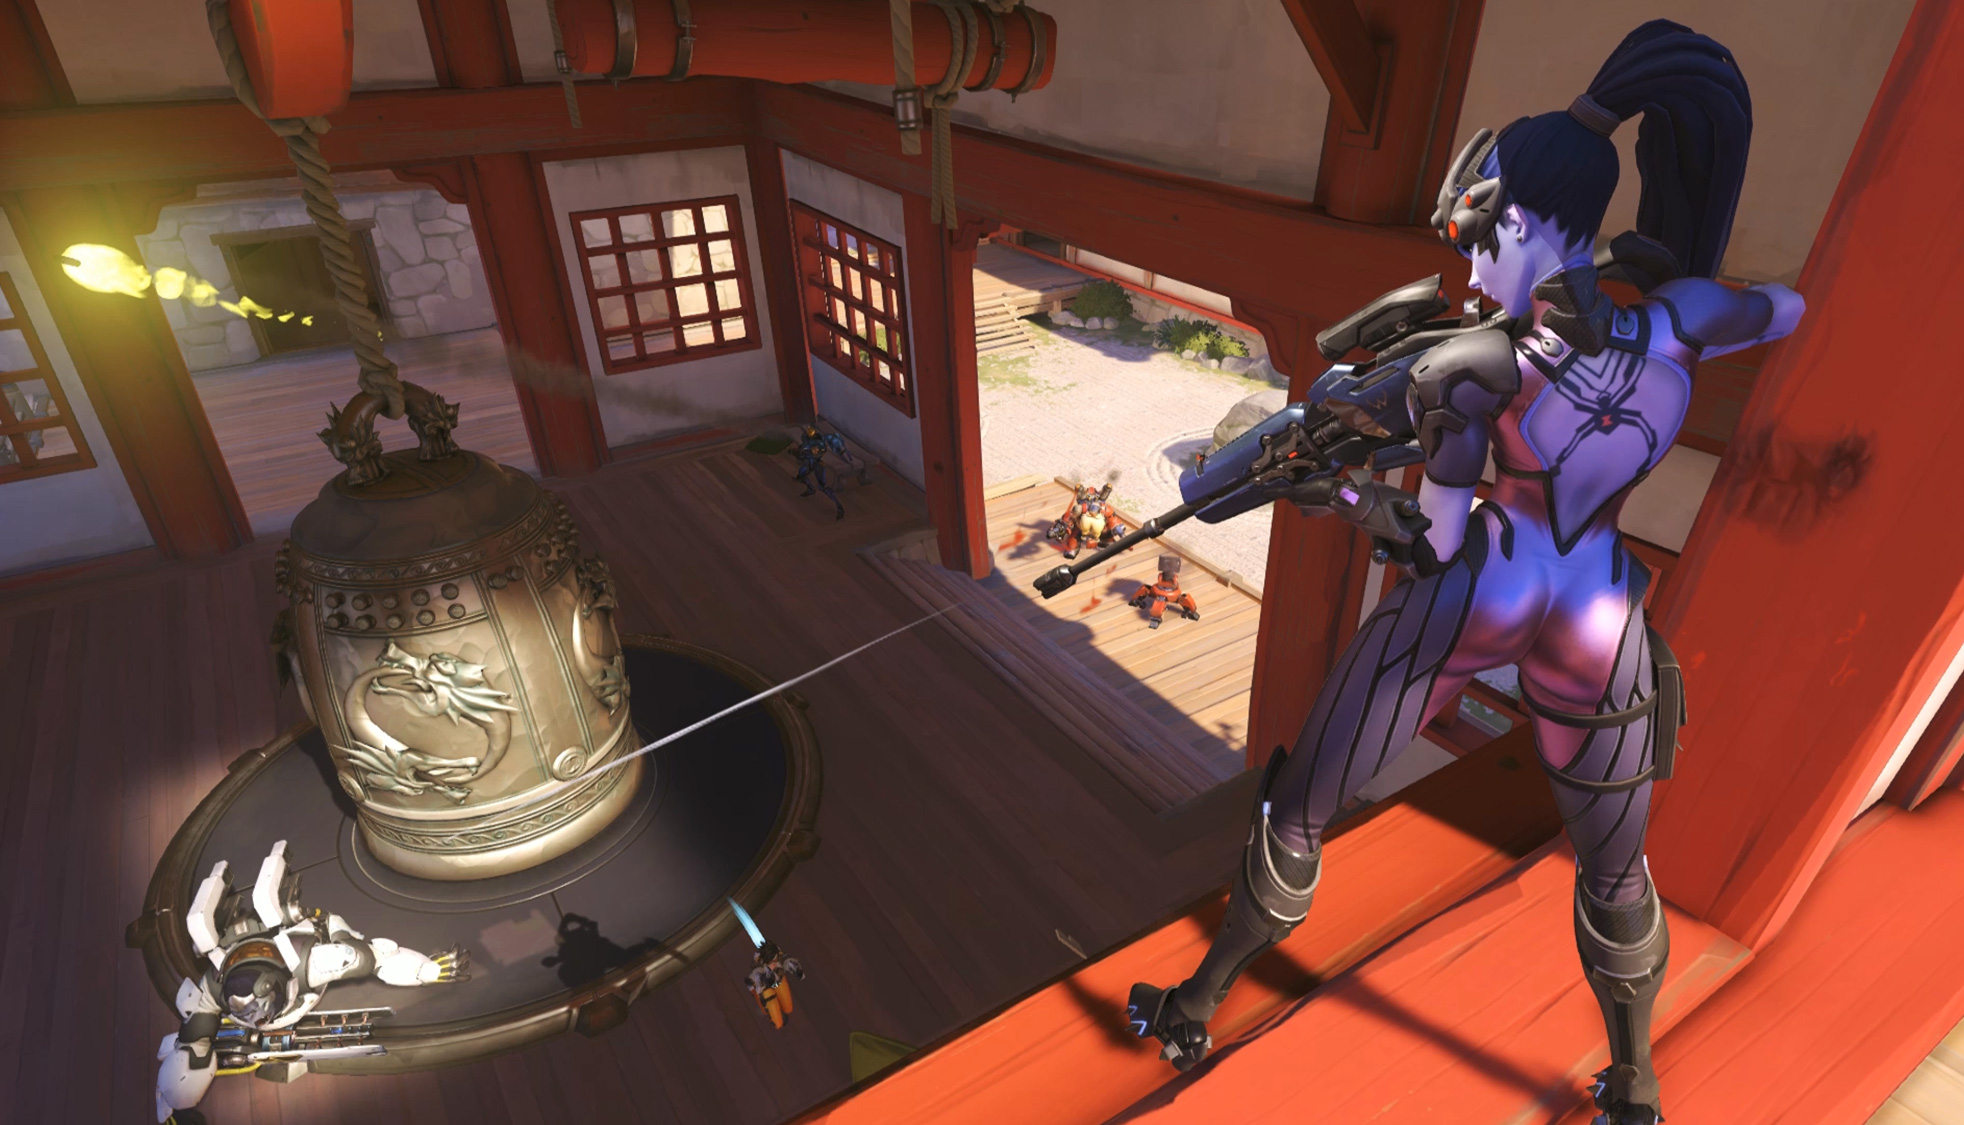 Overwatch fatale en train de viser